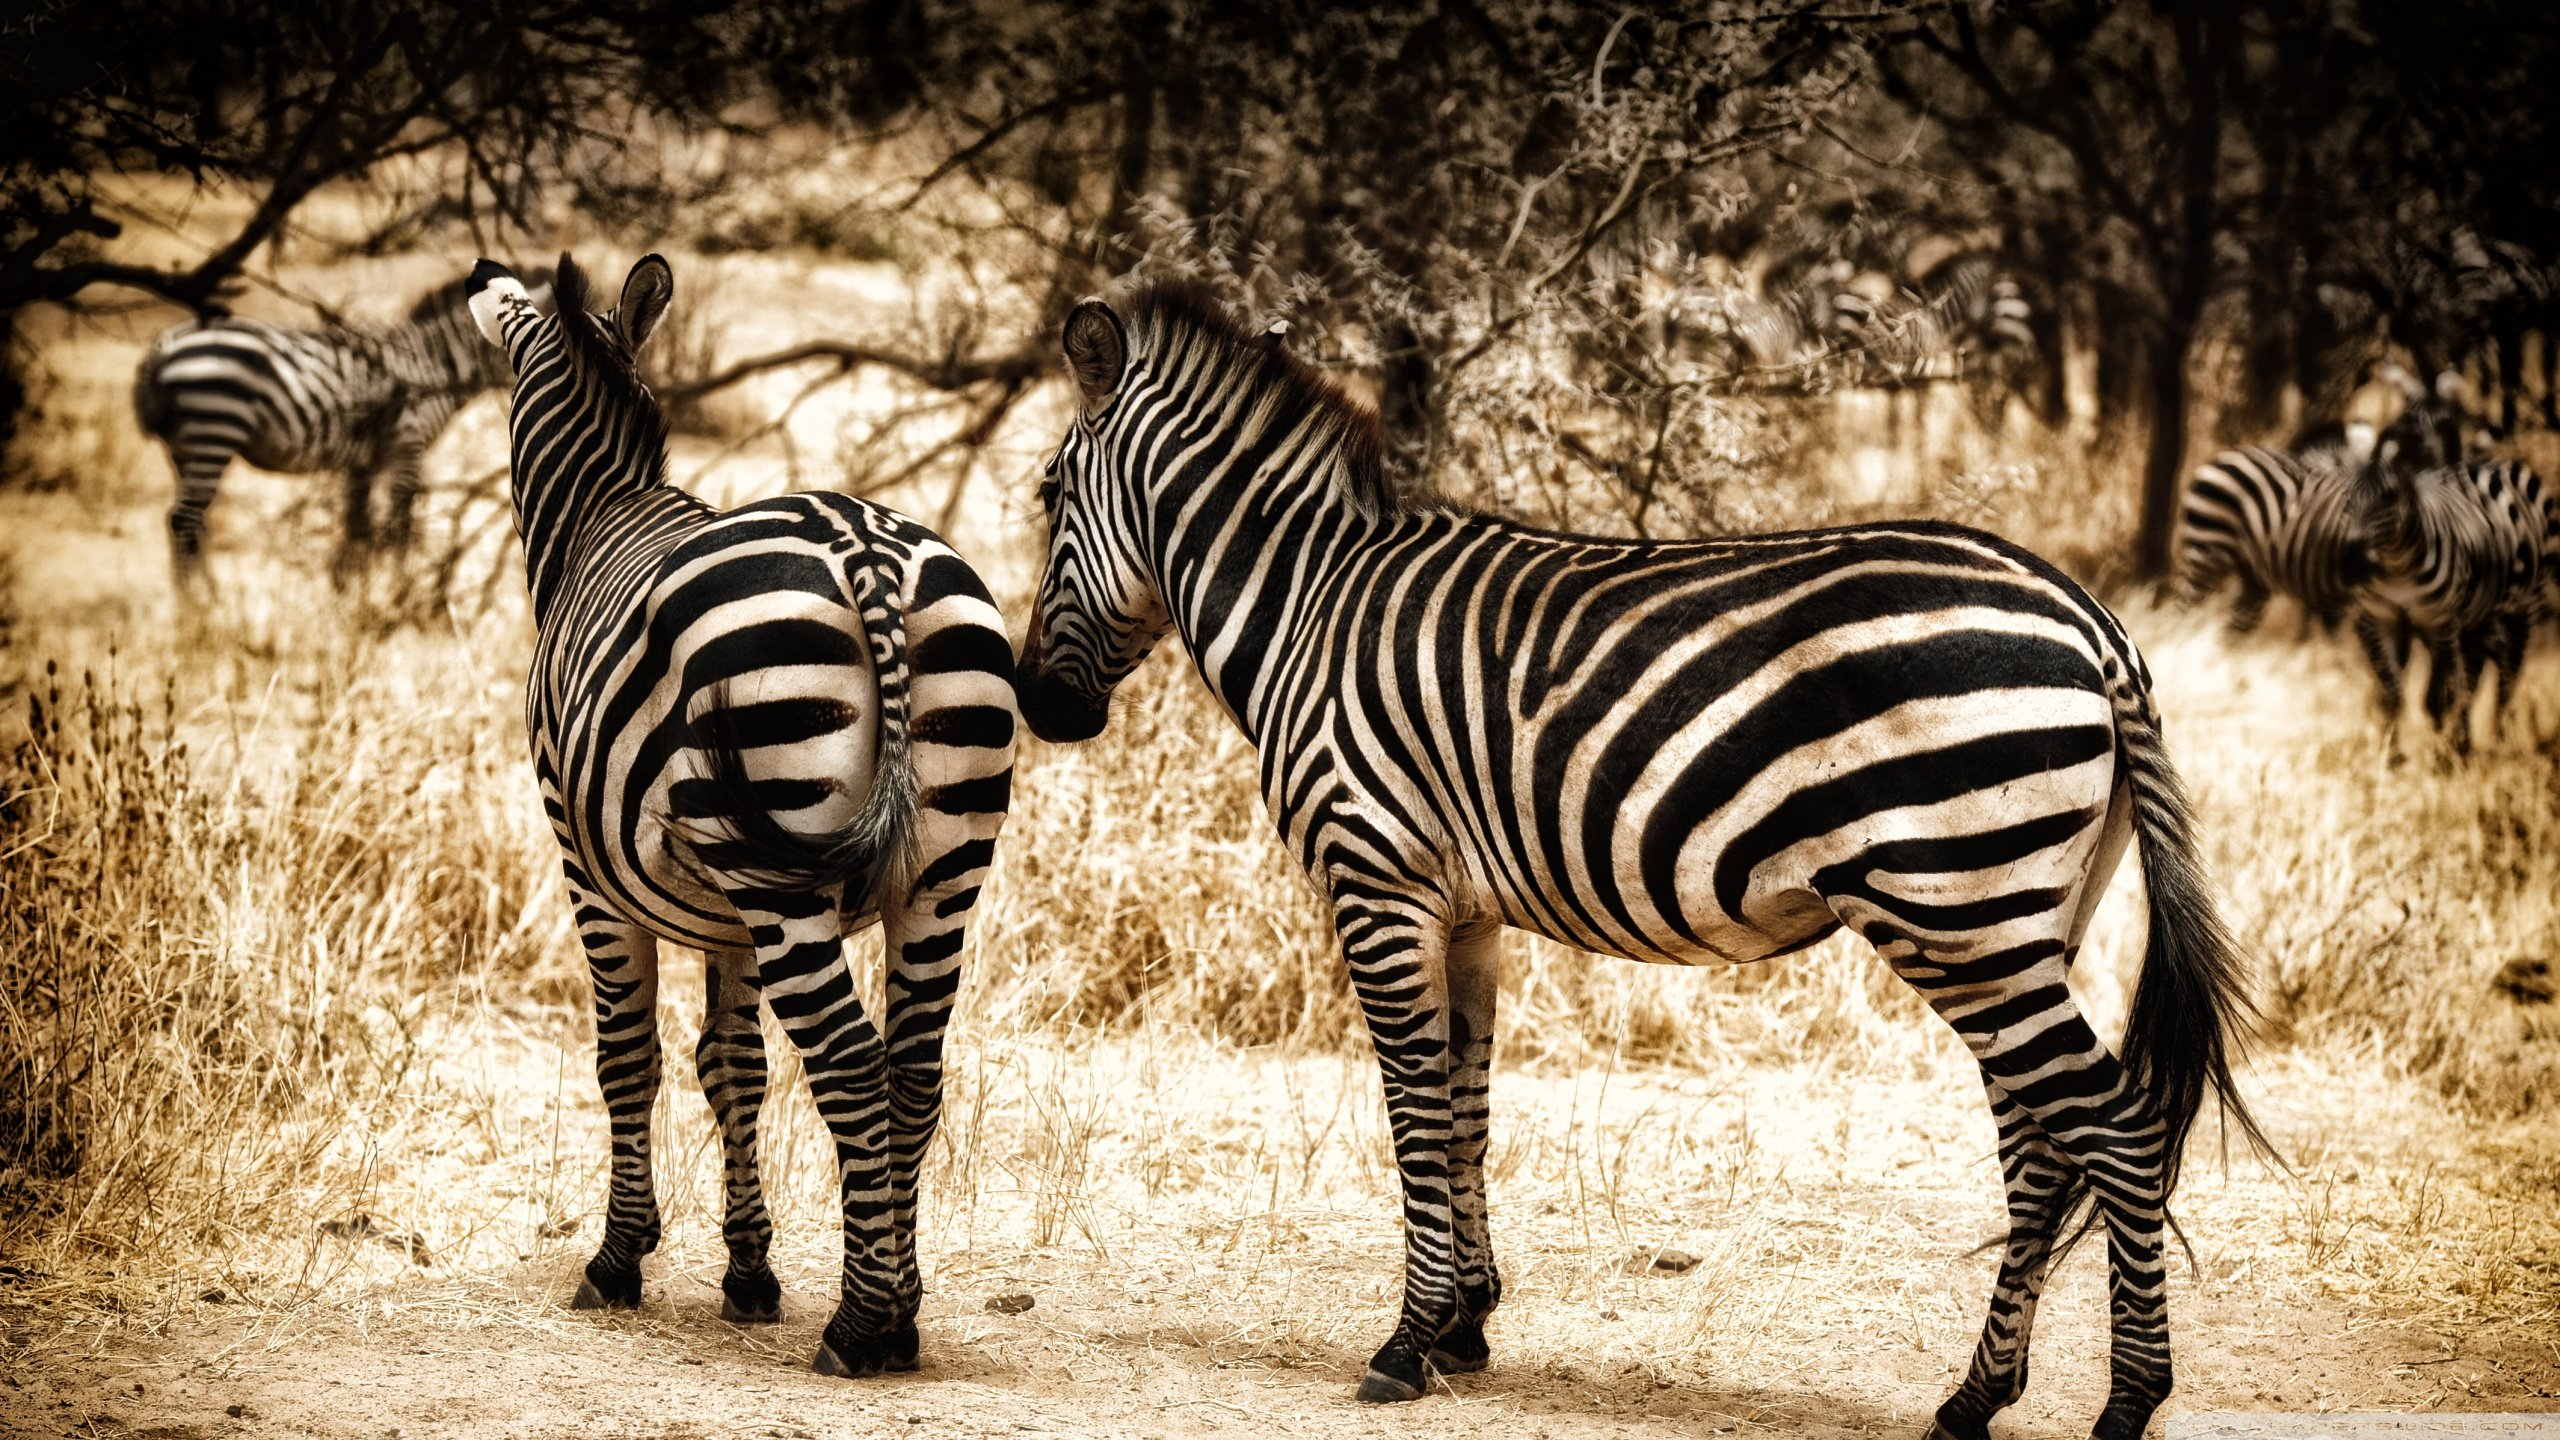 Download hd 2560x1440 Zebra PC background ID:73692 for free